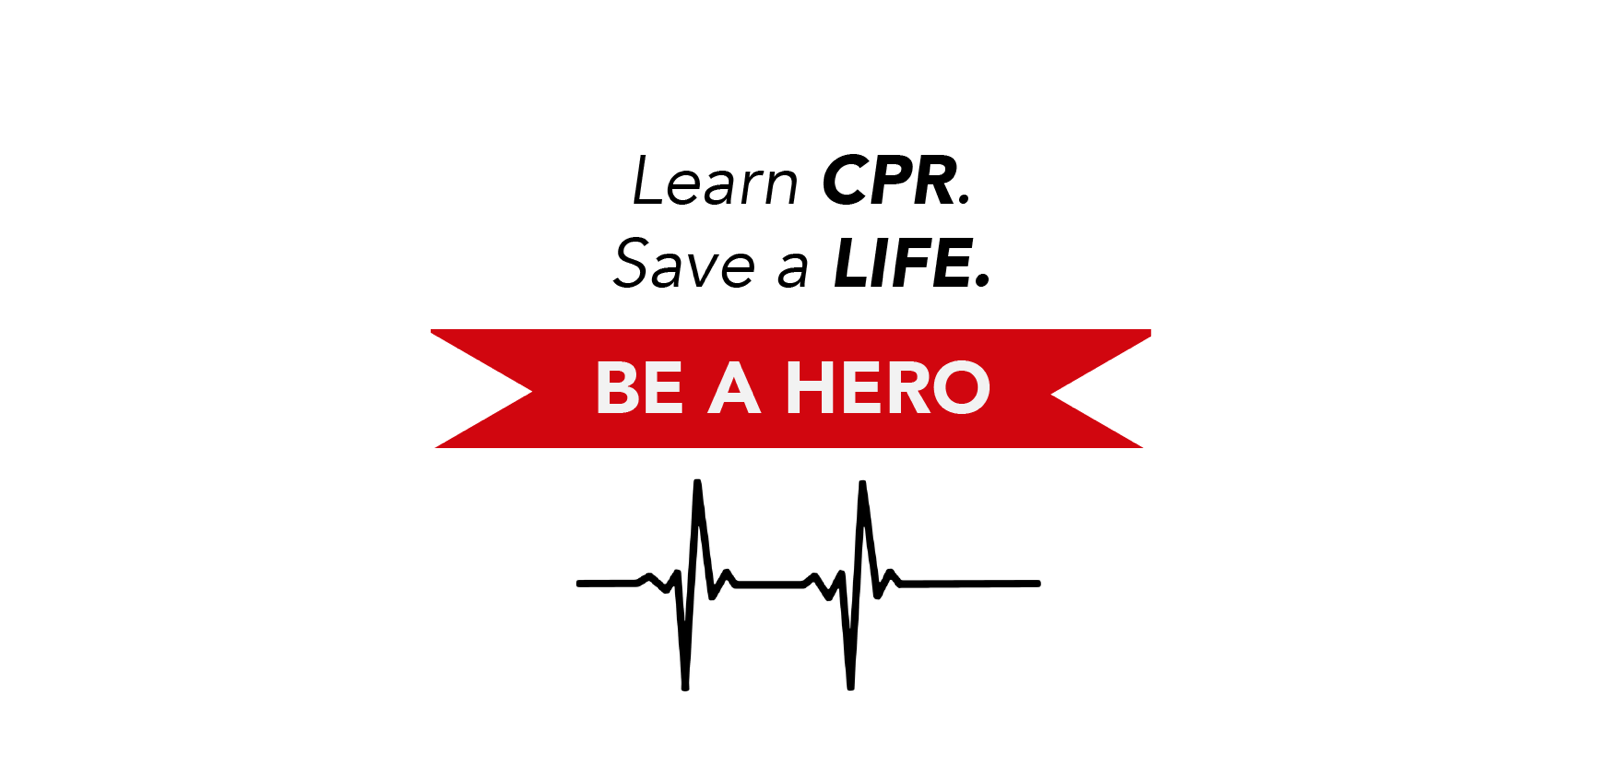 SAVE A LIFE LEARN CPR ems emt paramedic FIRST AID CPR TRAINER T-SHIRT  V01